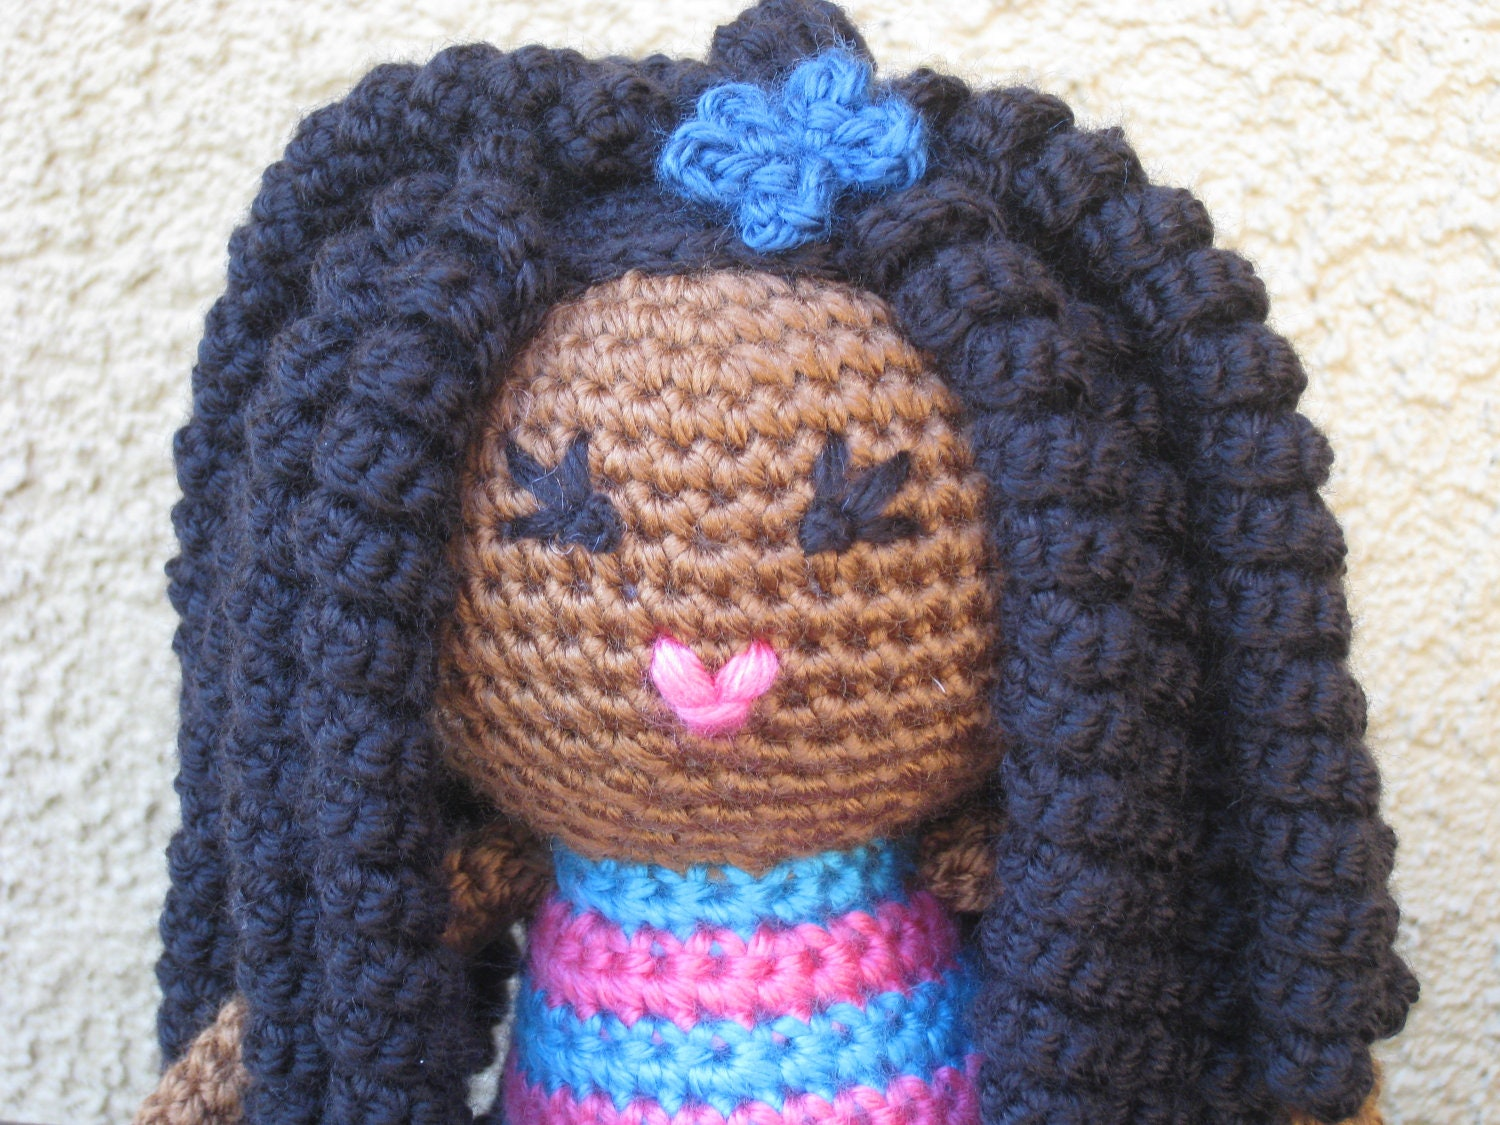 Amigurumi Curly Doll : Crochet pattern african curly haired doll plush amigurumi